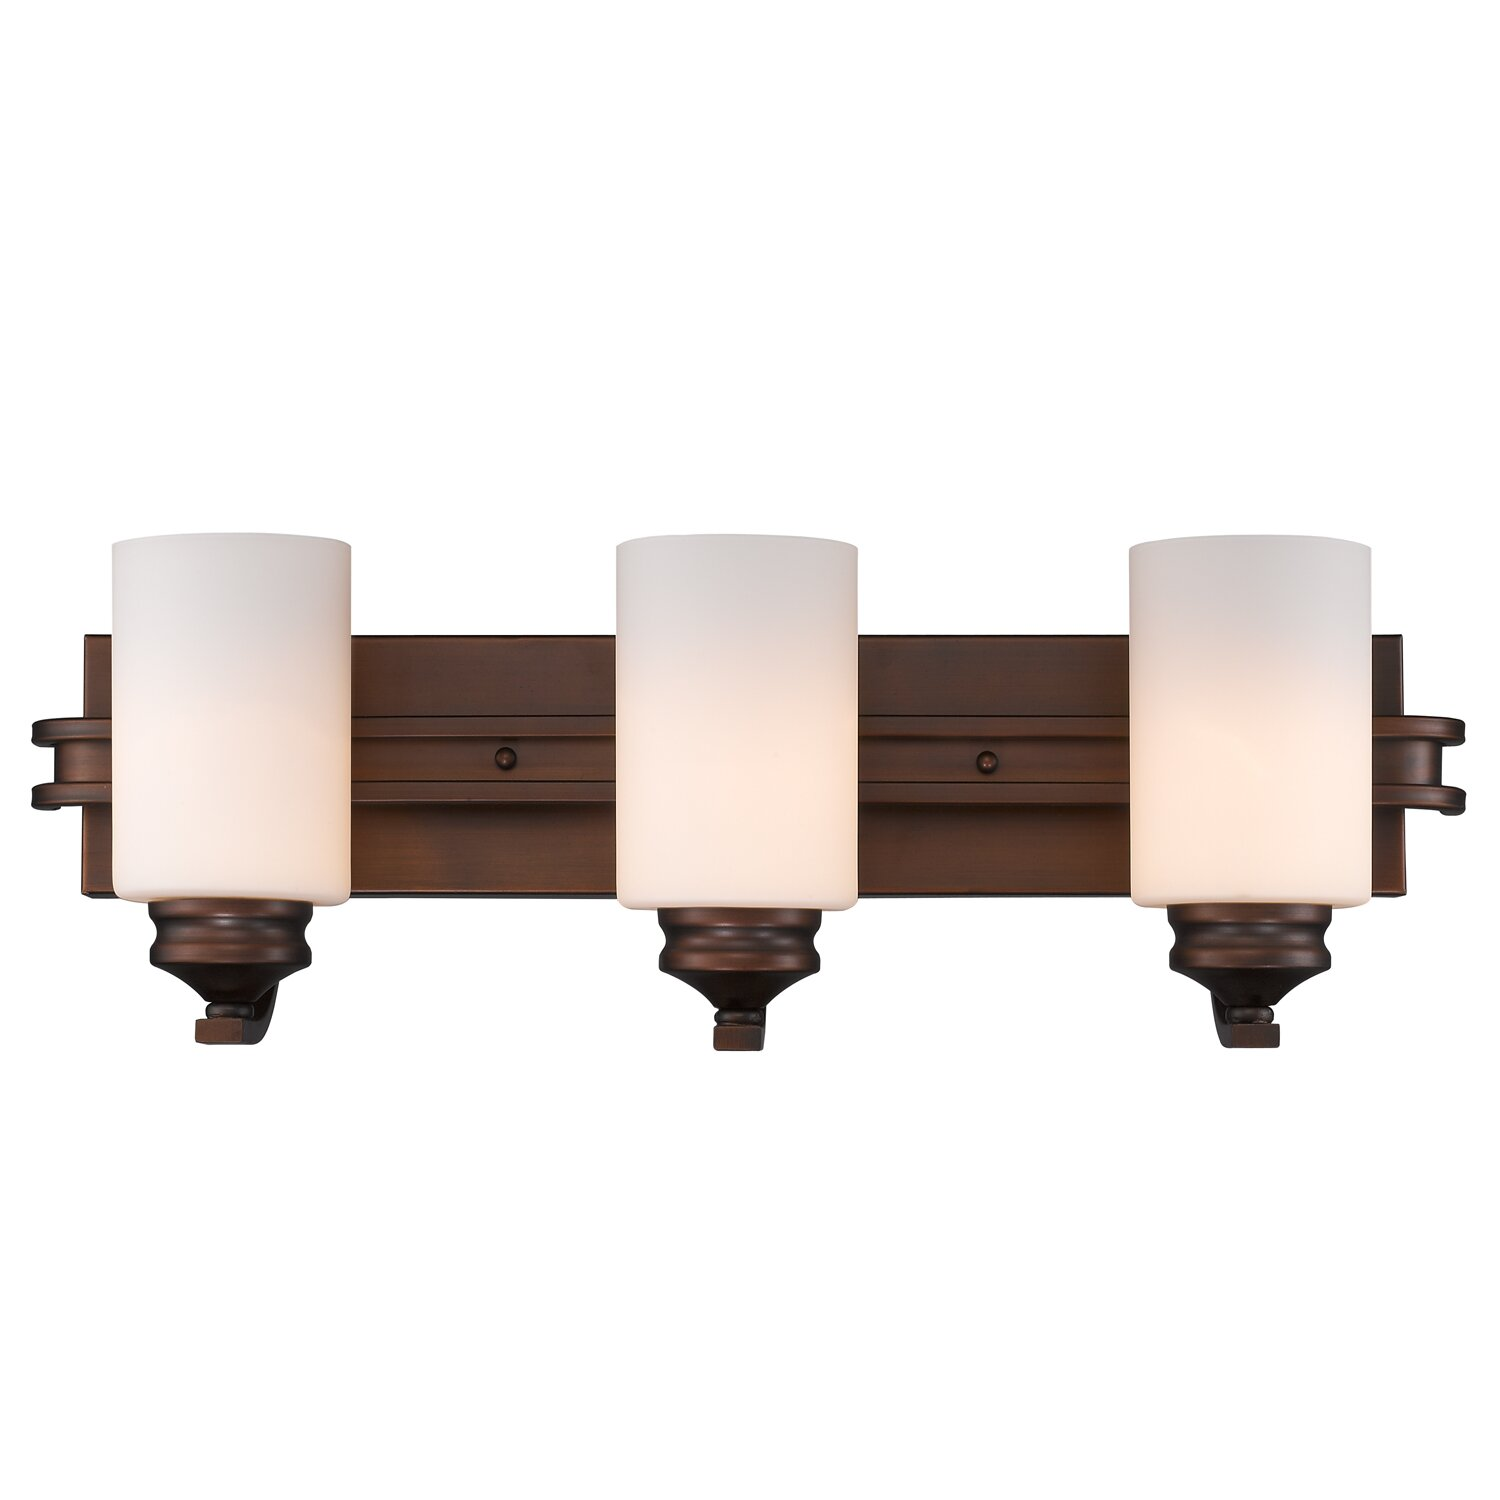 Three Posts Russell Farm 3 Light Bath Vanity Light & Reviews